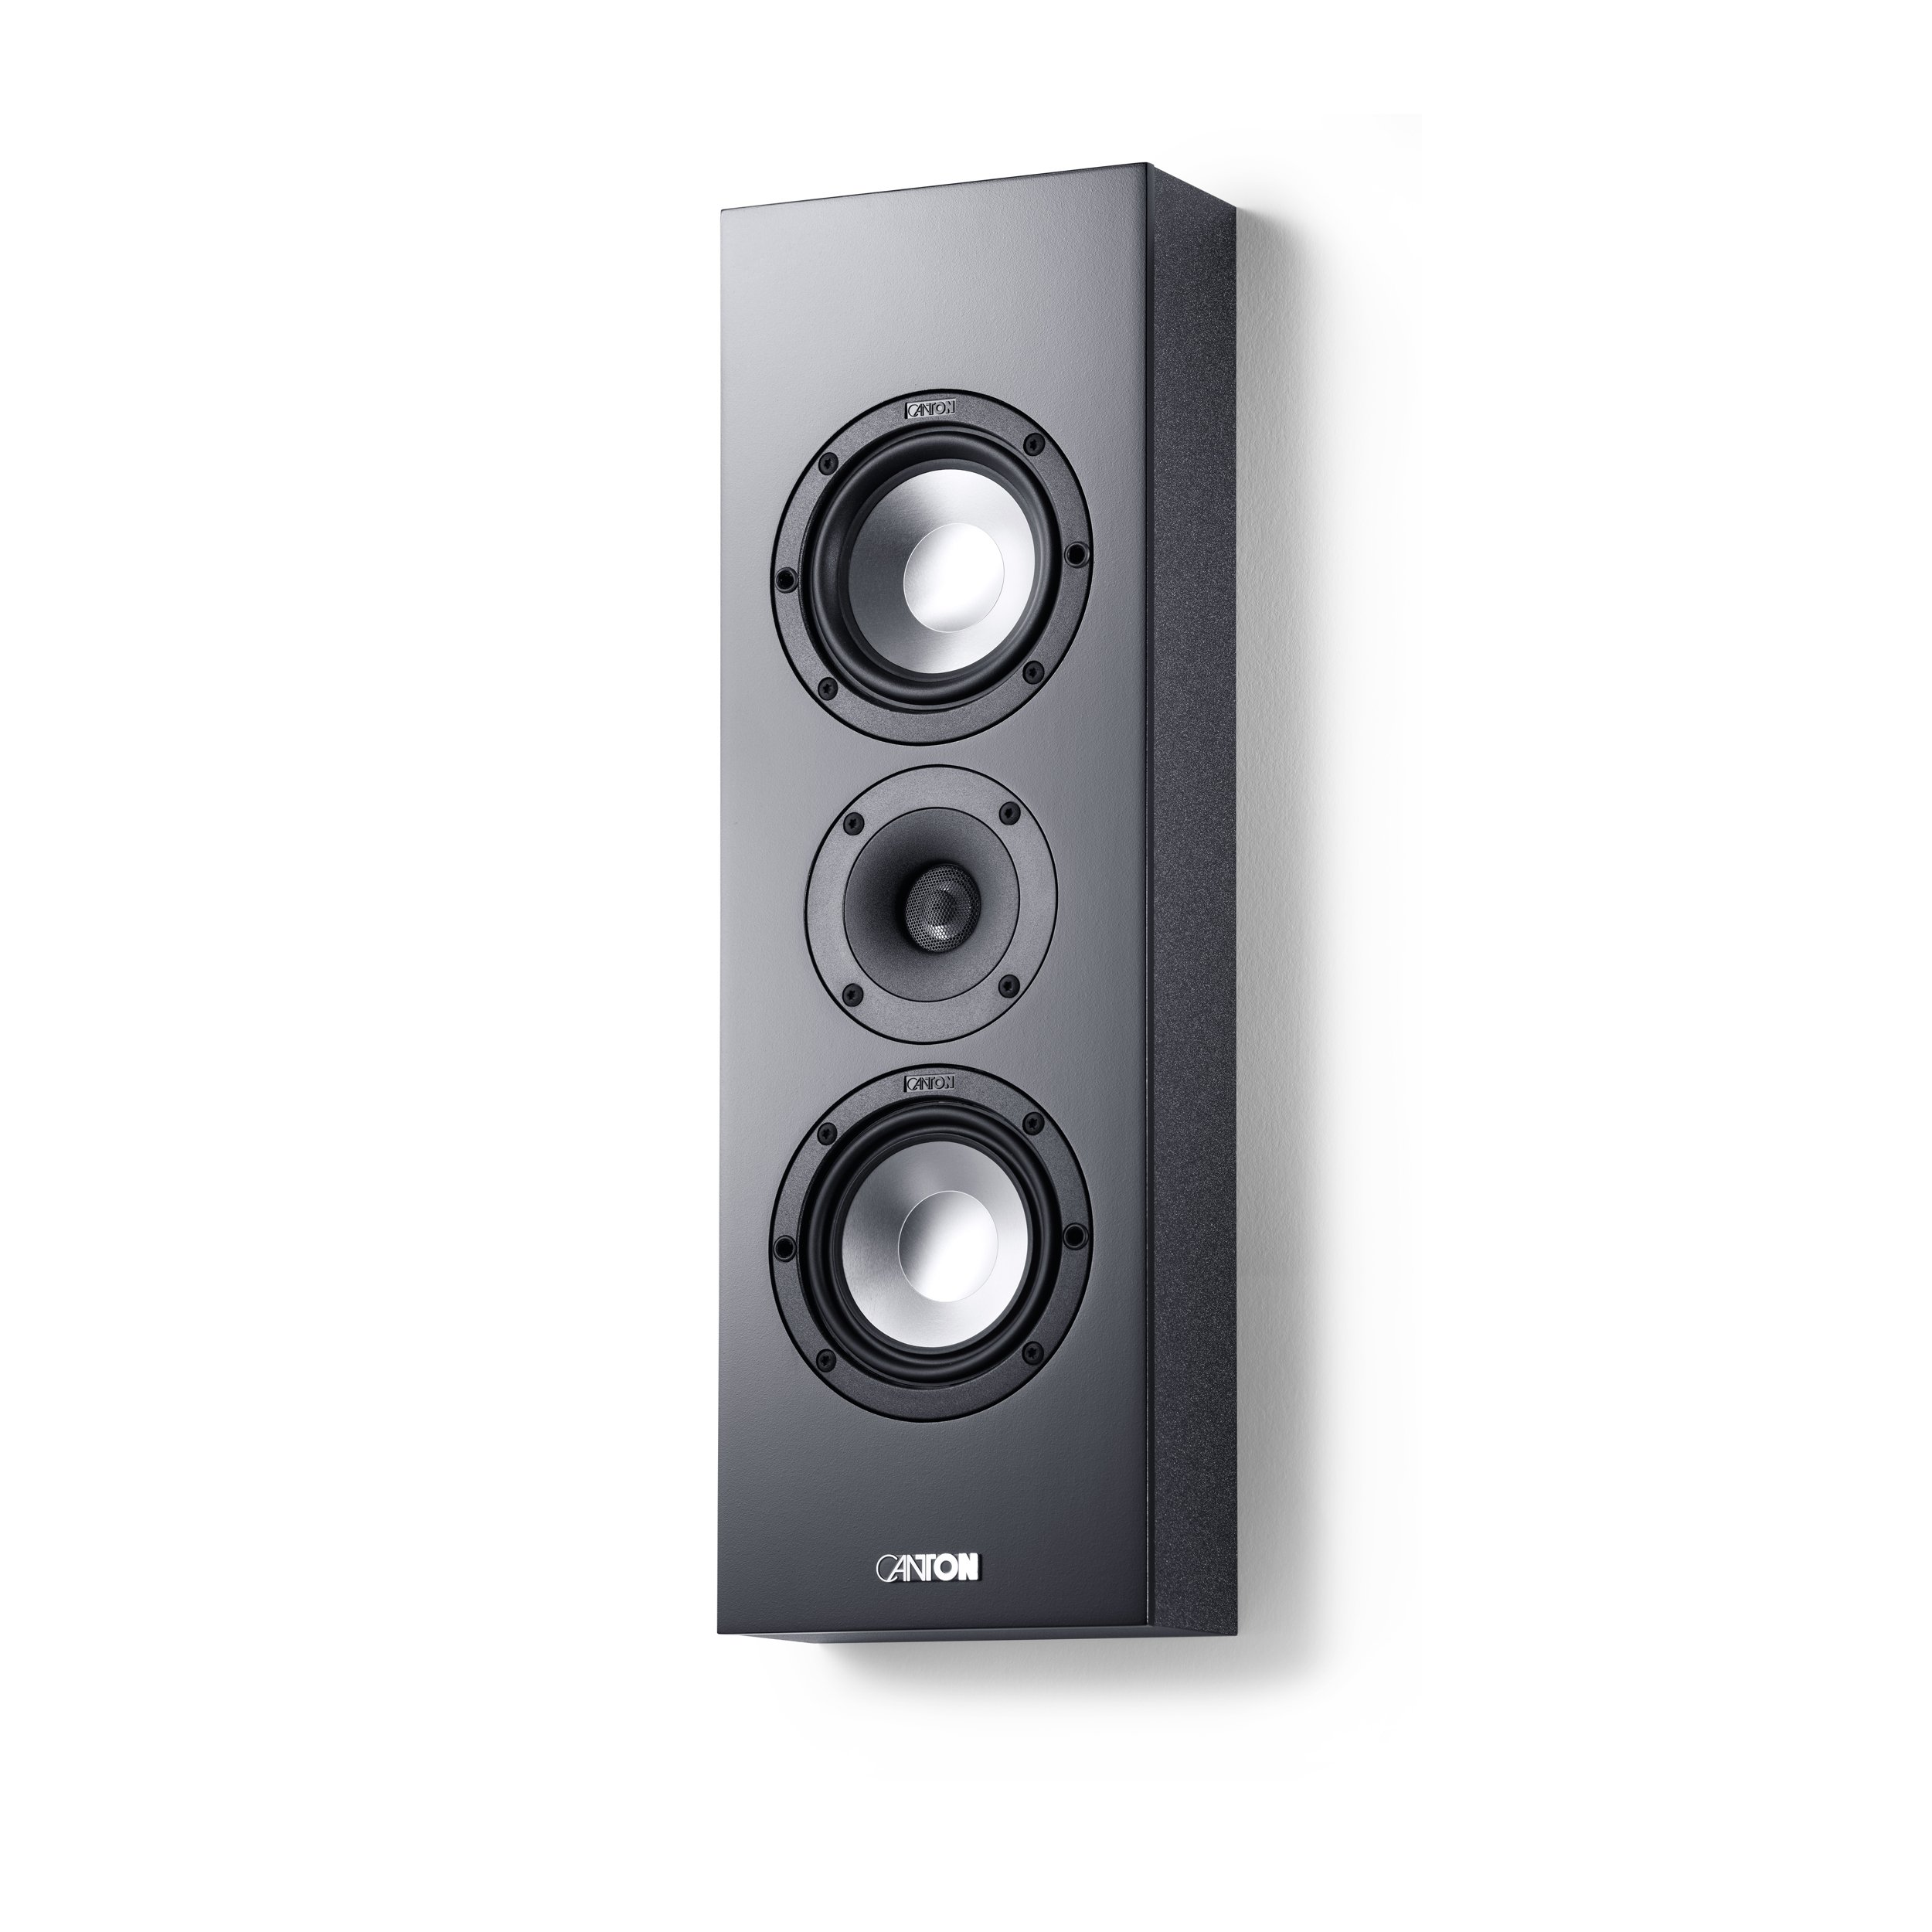 GLE 417.2 5'' 2-Way On-Wall LCR Speaker Each (Black) by Canton